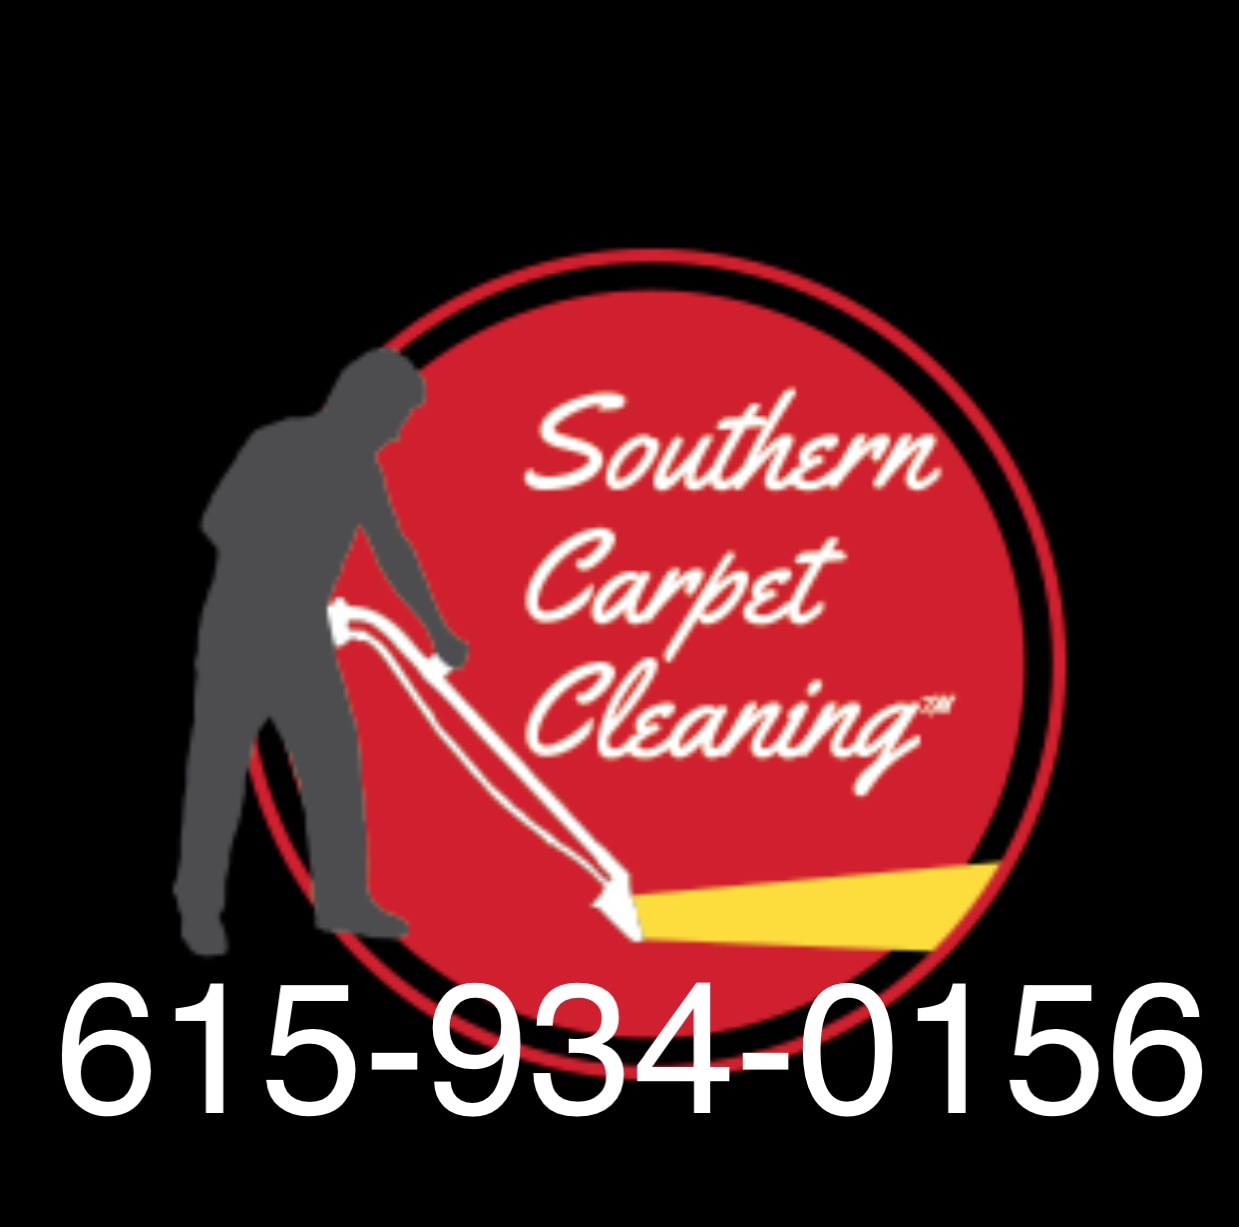 Southern Carpet Cleaning, LLC